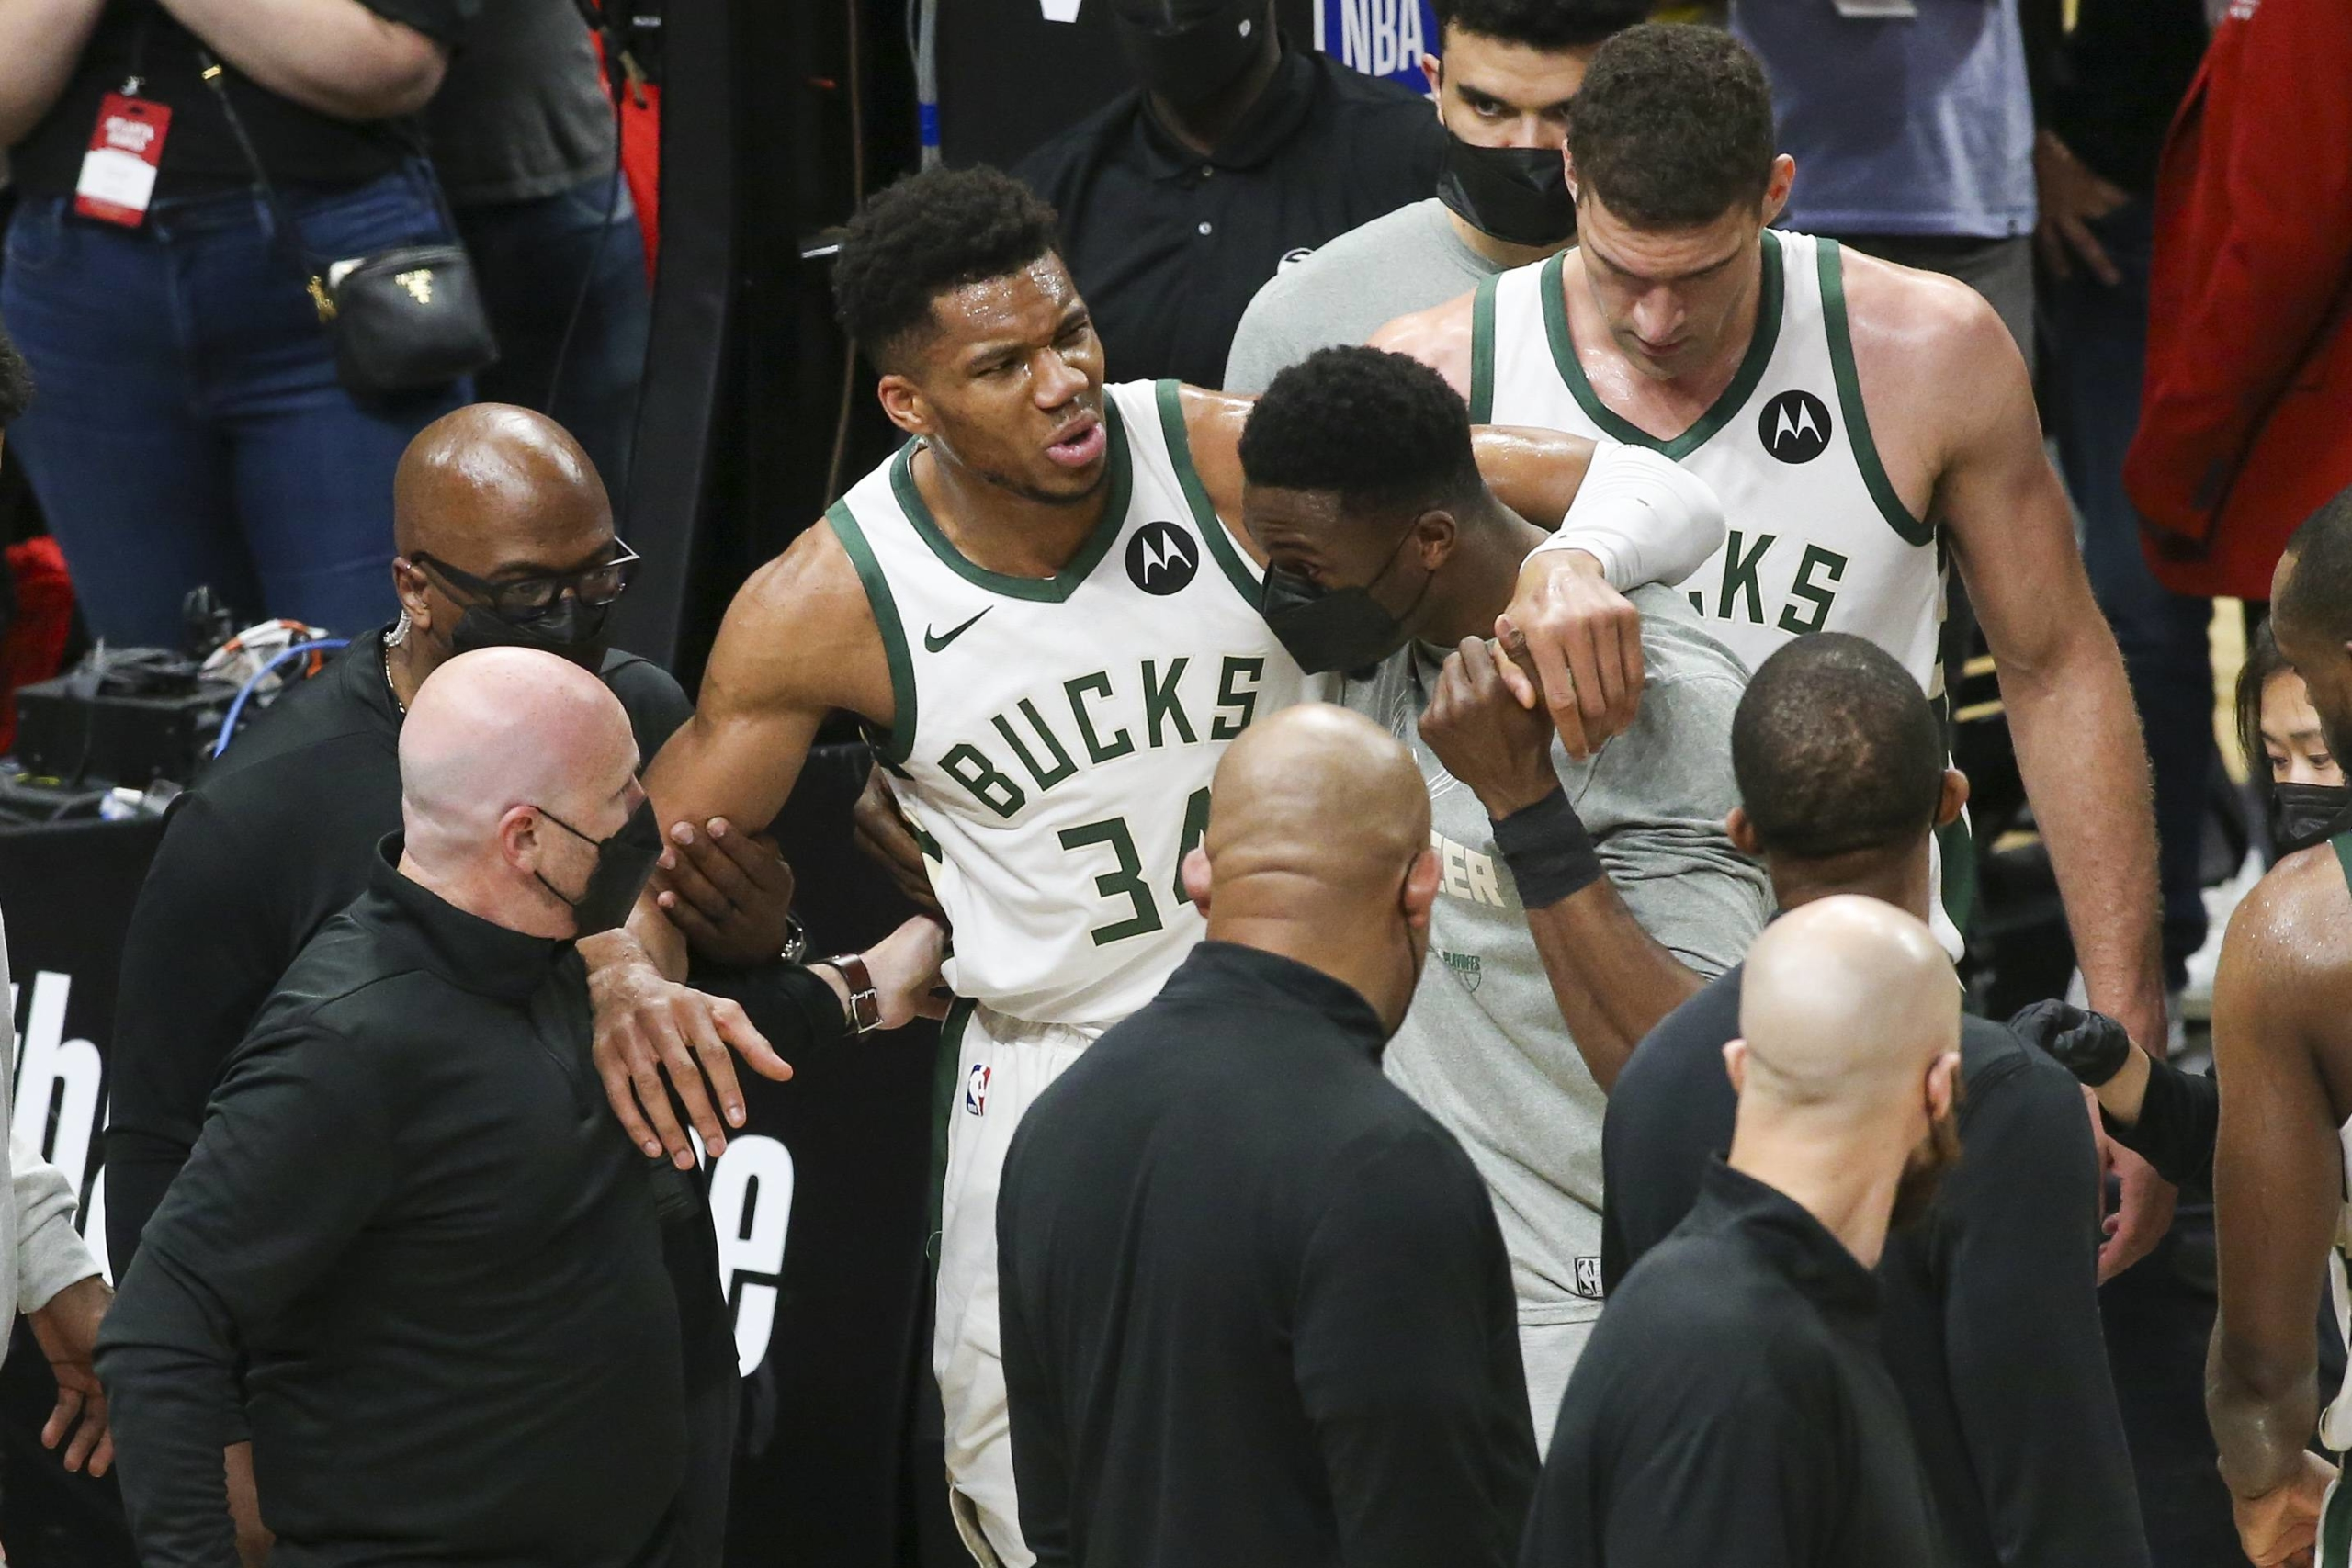 Bucks forward Giannis Antetokounmpo (34) is helped off the court after suffering an injury during Game 4 of the Eastern Conference Finals against the Hawks on Tuesday in Atlanta. | USA TODAY / VIA REUTERS